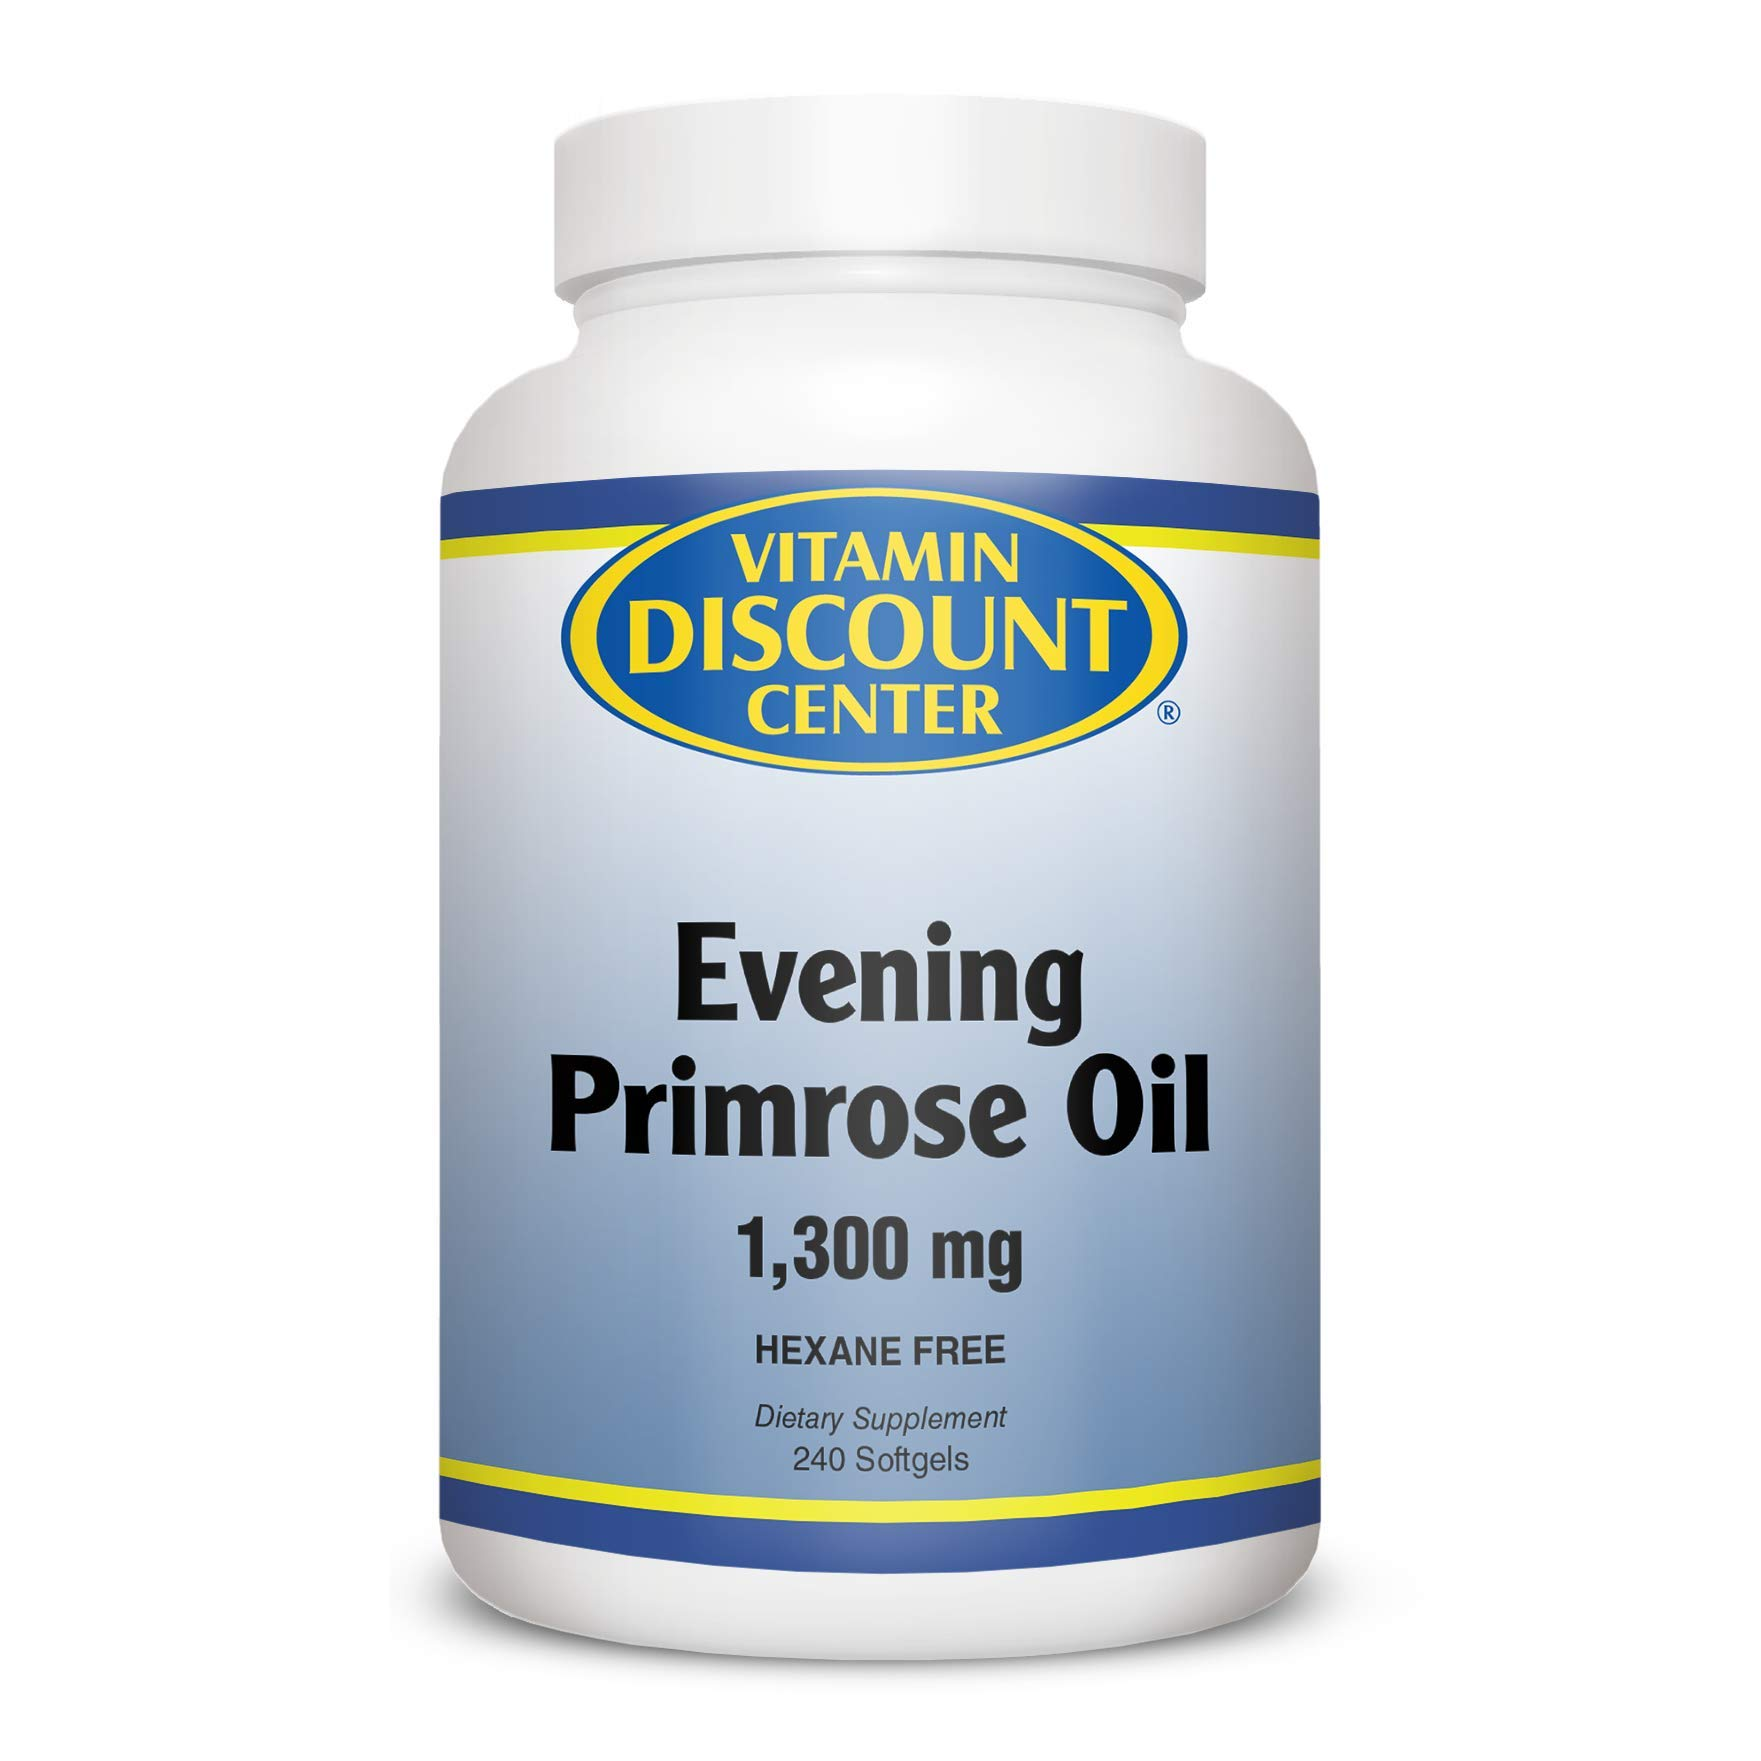 Vitamin Discount Center Evening Primrose Oil 1300mg, 240 Softgels